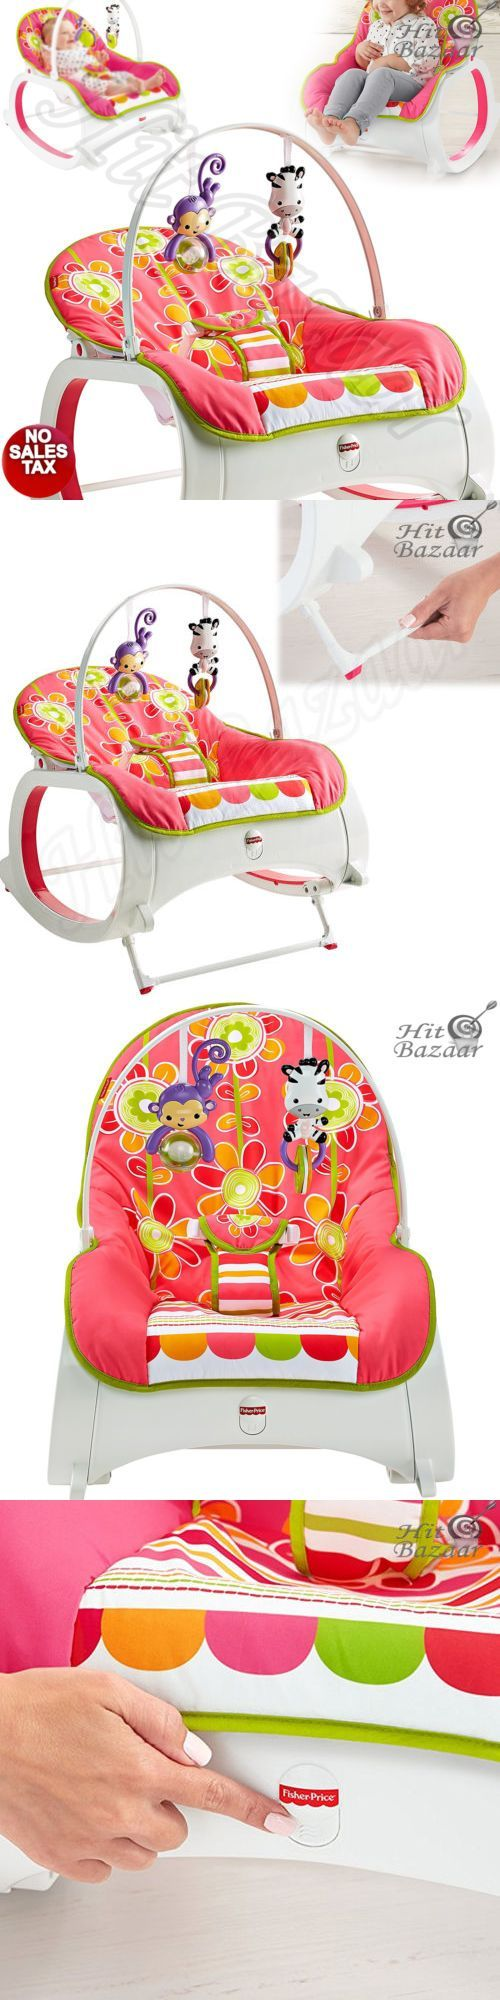 Baby swings infant to toddler rocker seat baby chair bouncer